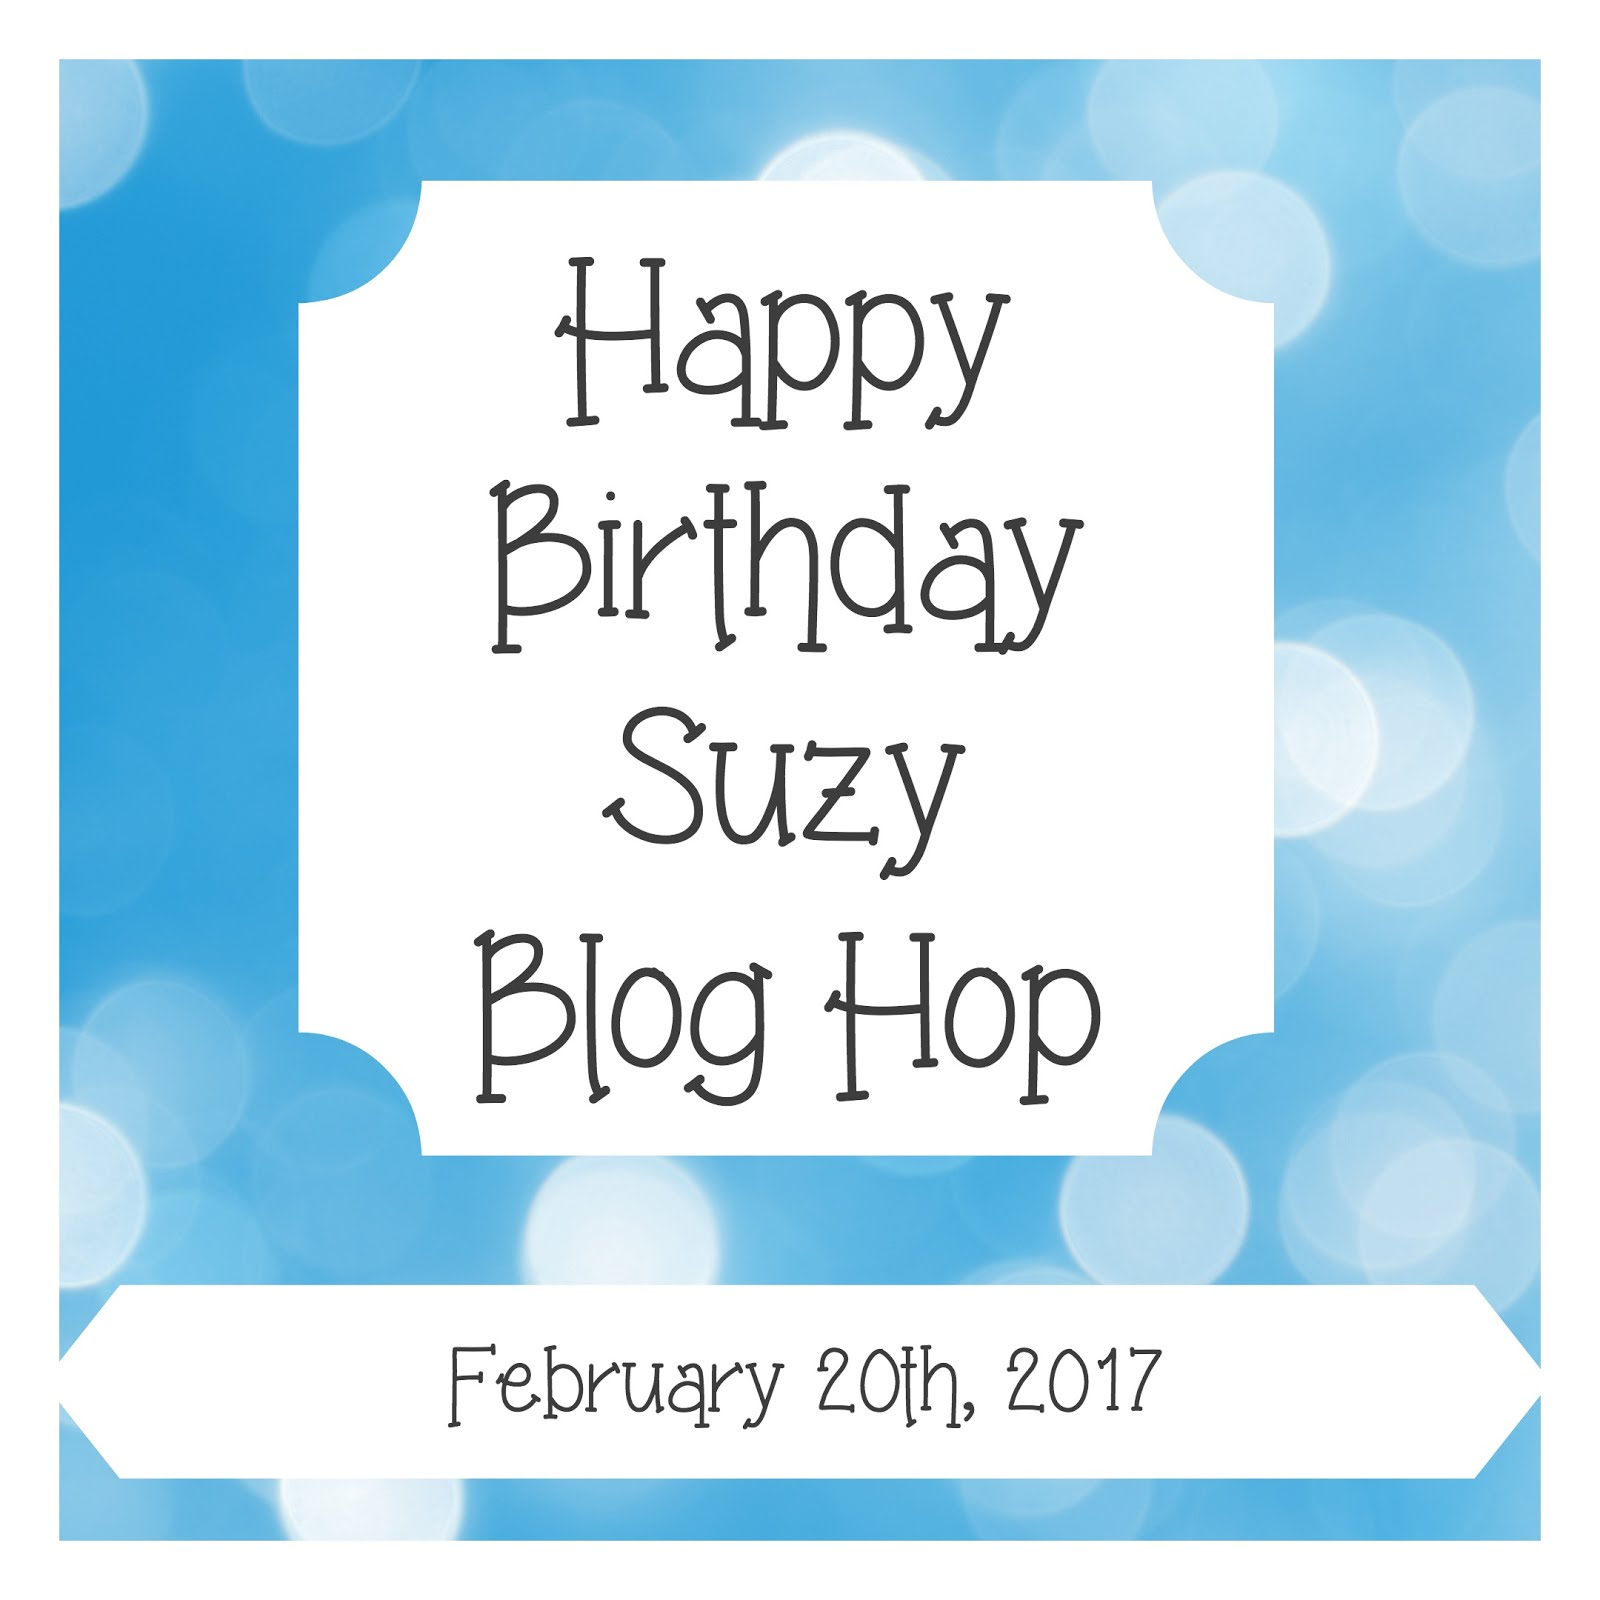 Happy Birthday Suzy!